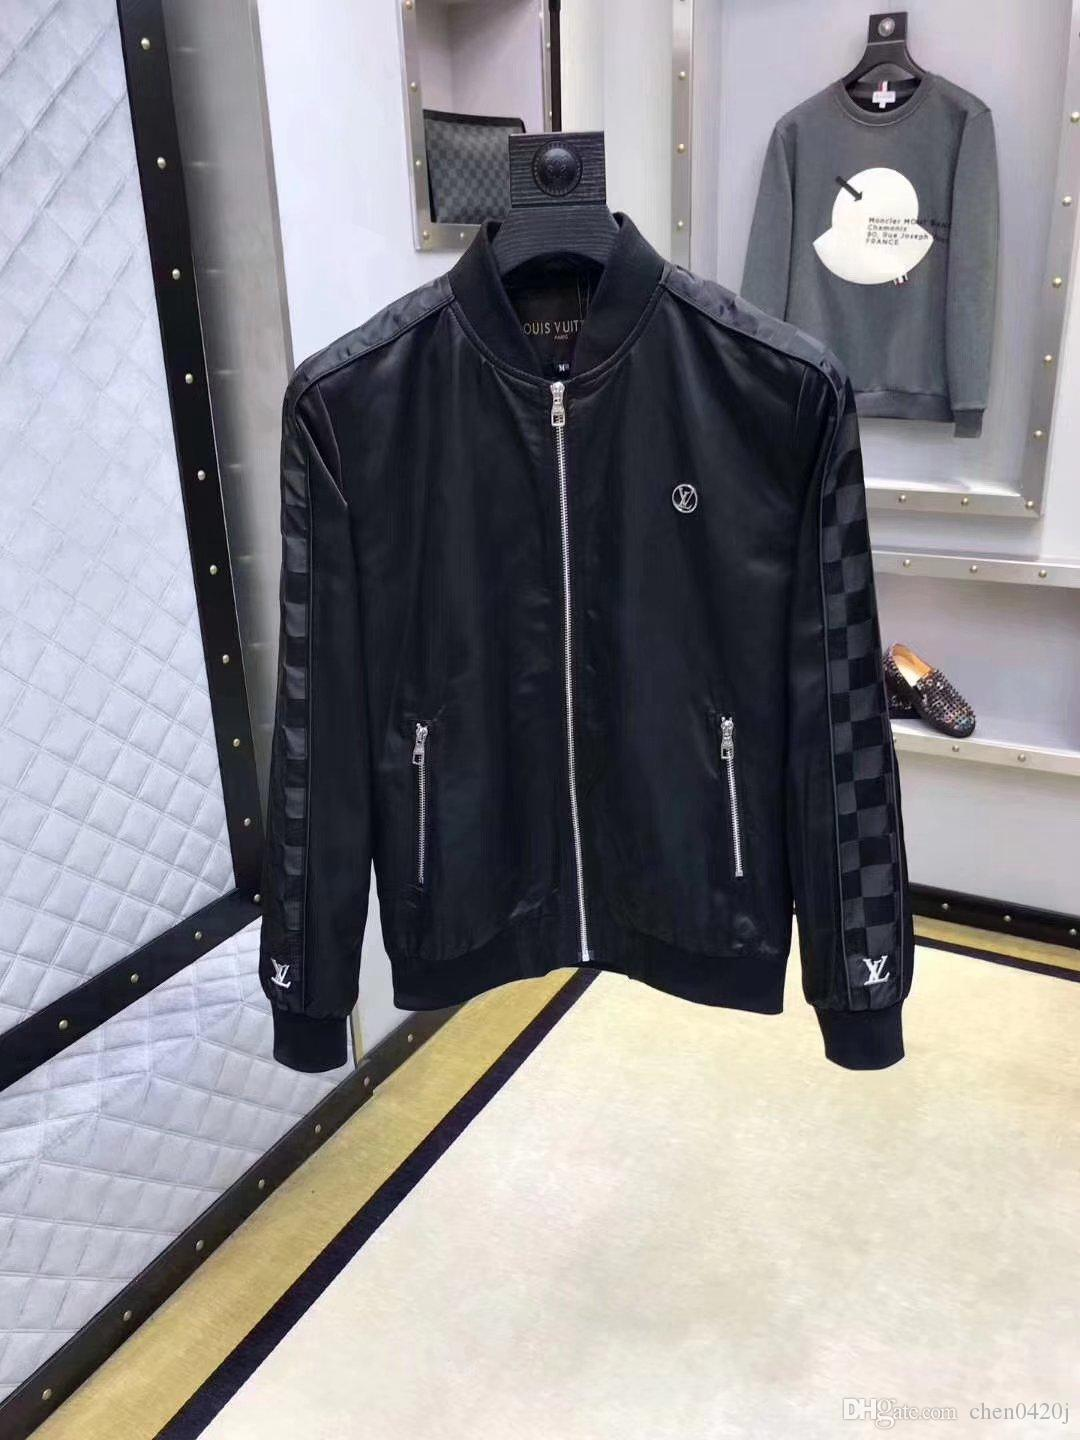 Free Shipping New 2019 Spring And Autumn Period And The Double Jacket For Fashion Leisure Coat Jackets Menswear21